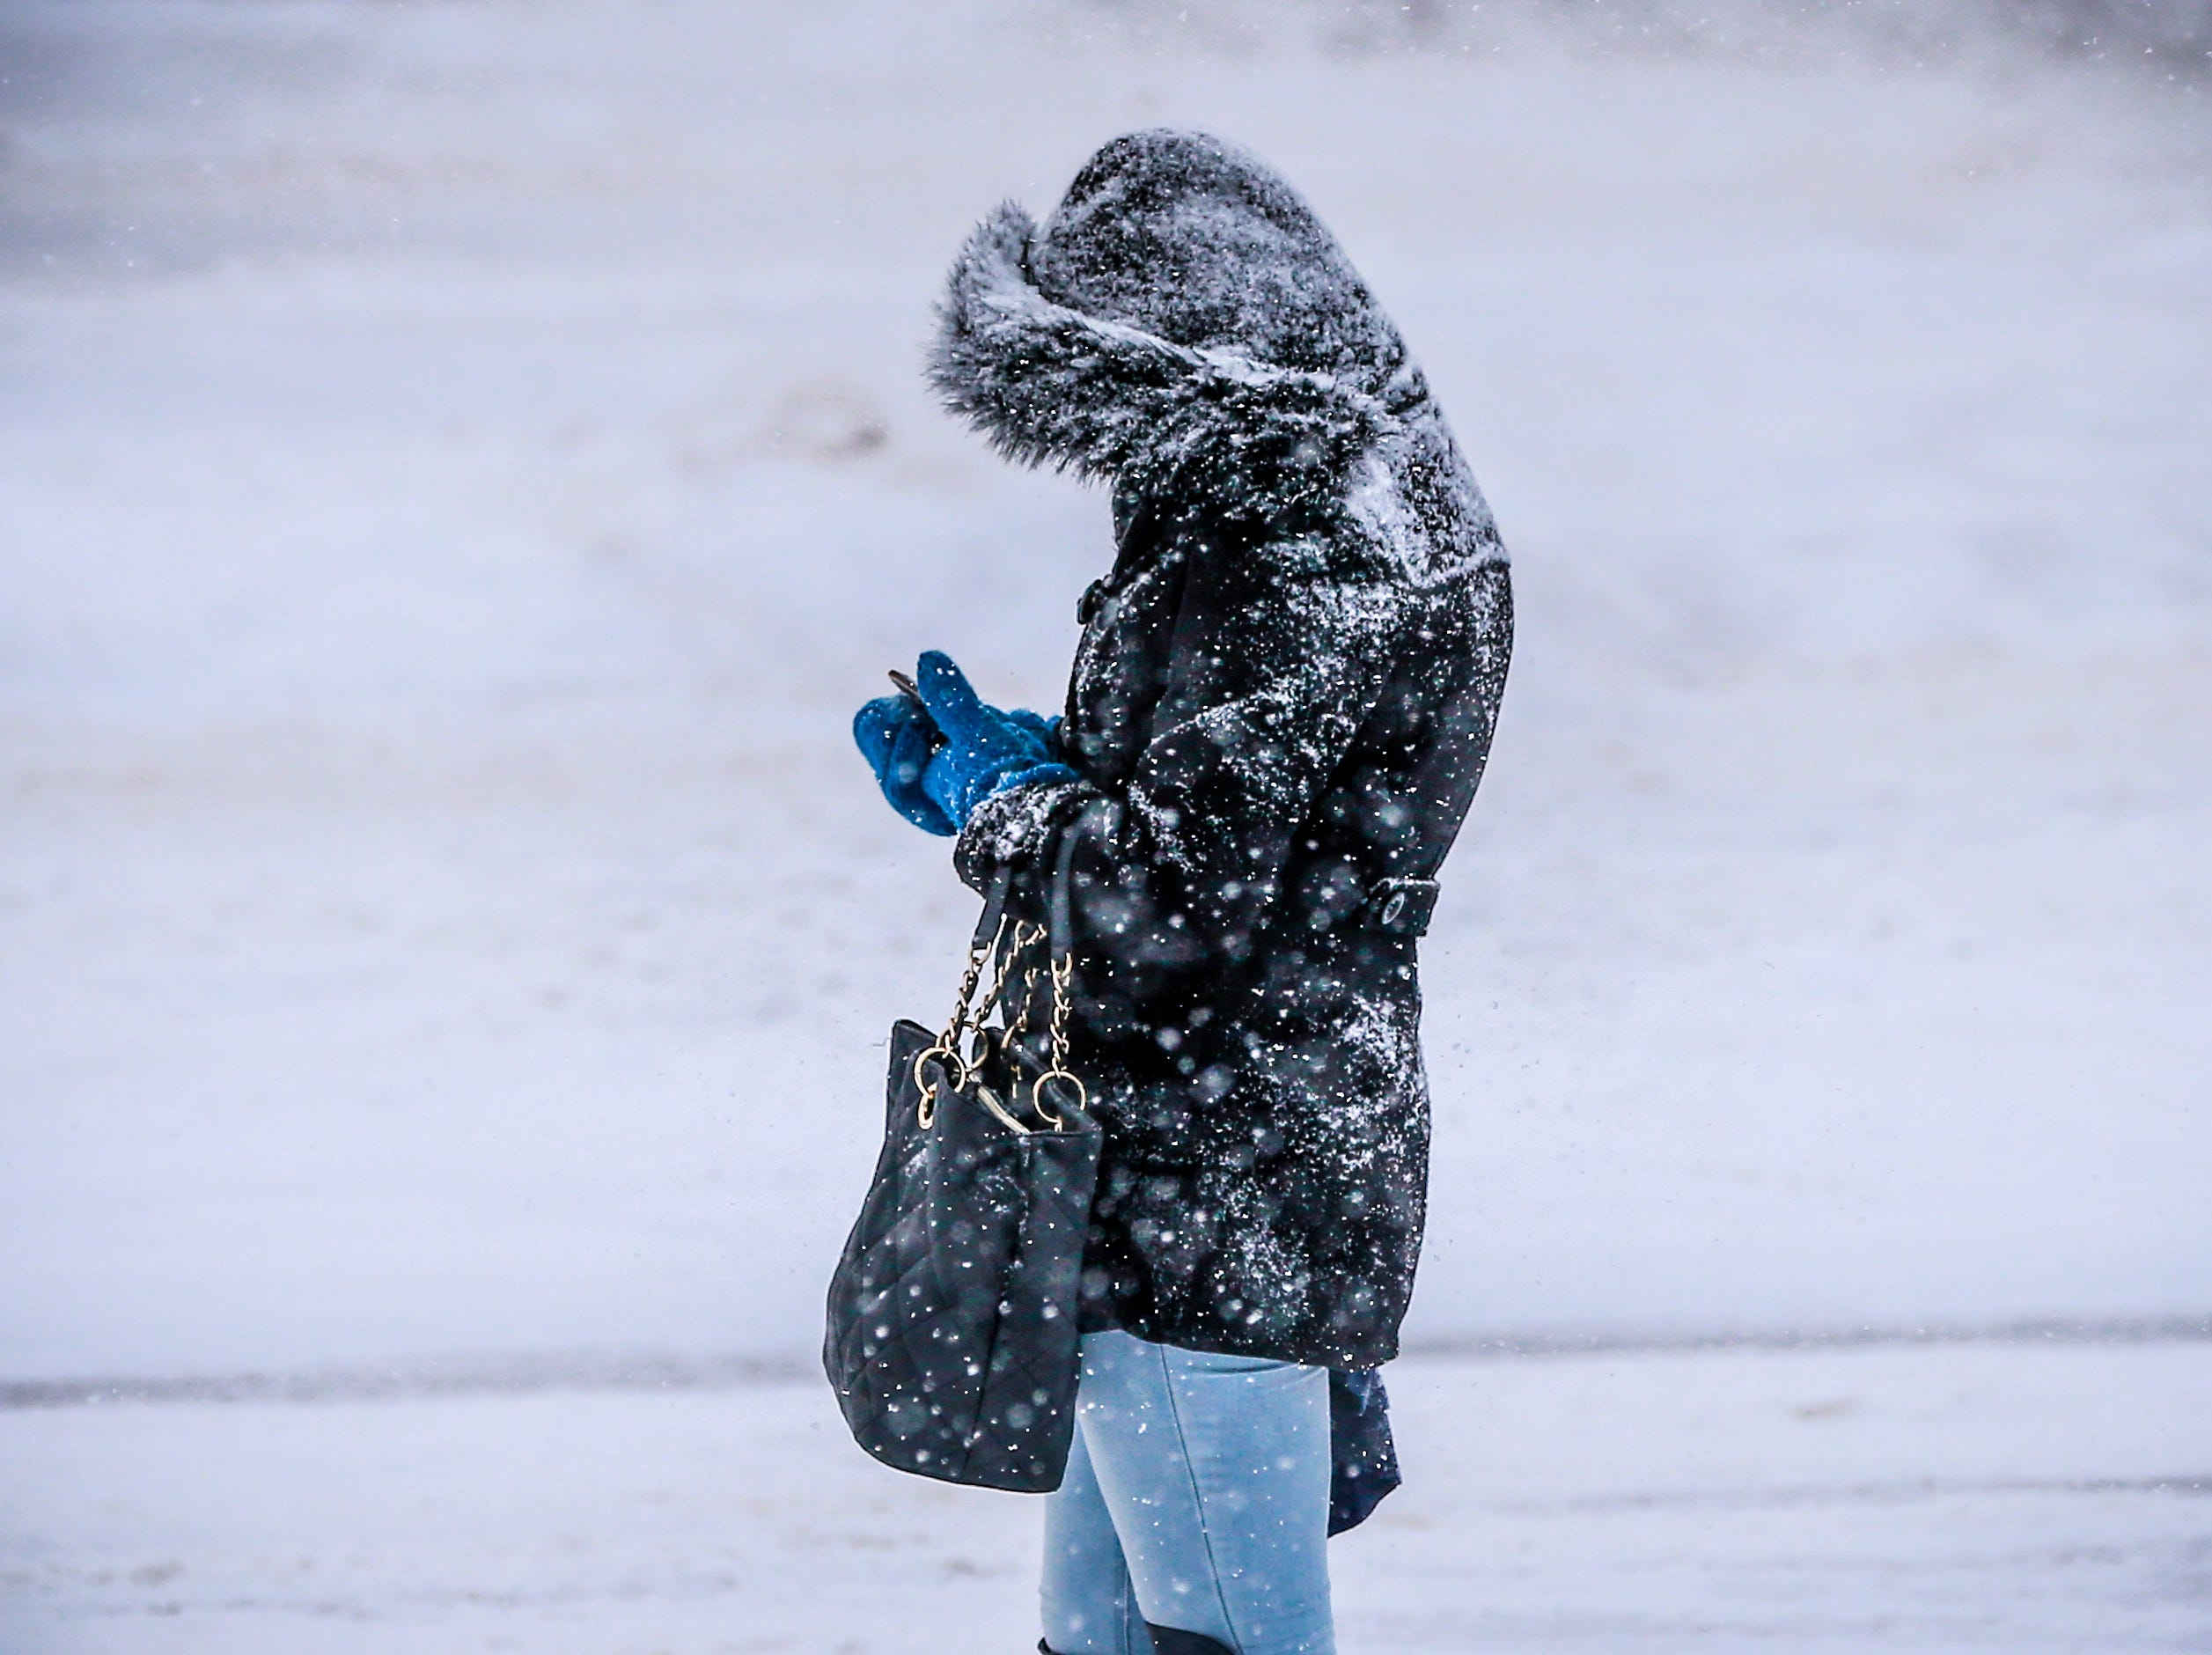 A pedestrian waits for Metro Ride bus alongside Stewart Avenue during a snowstorm Thursday, Feb. 07, 2019, in Wausau, Wis. T'xer Zhon Kha/USA TODAY NETWORK-Wisconsin